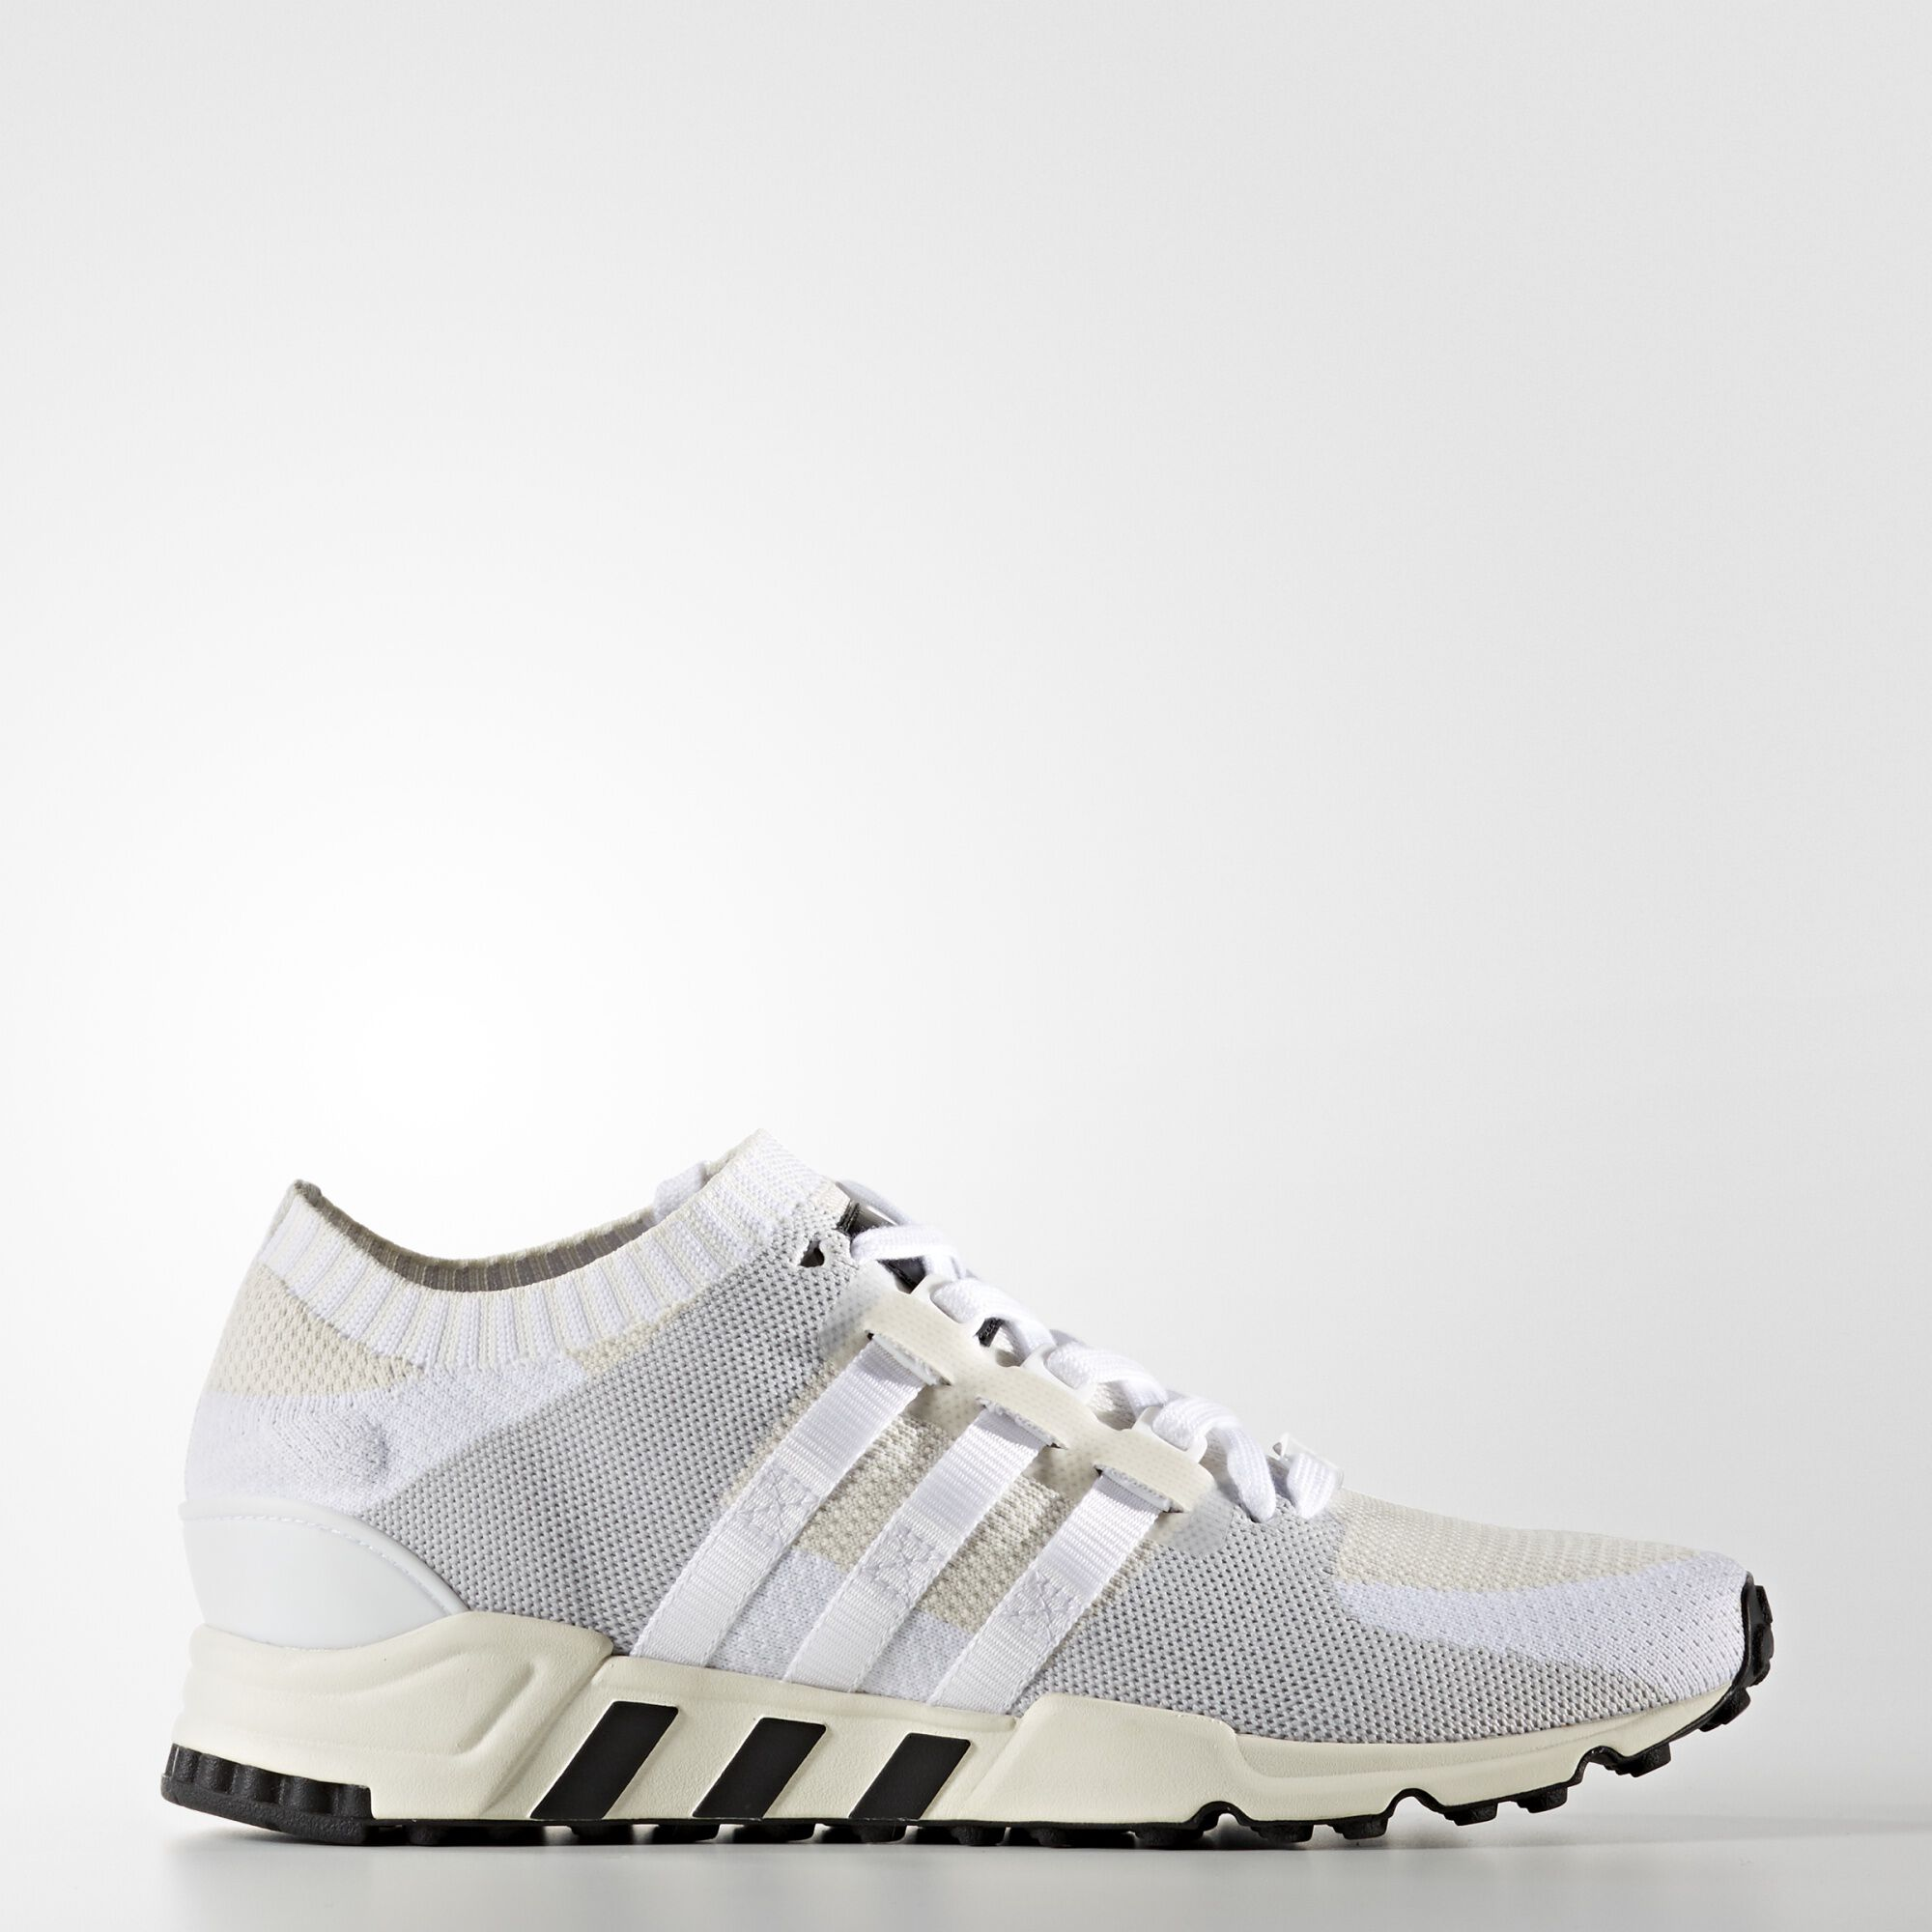 All Links To Buy White & Turbo Red Cheap Adidas EQT Support 93/17